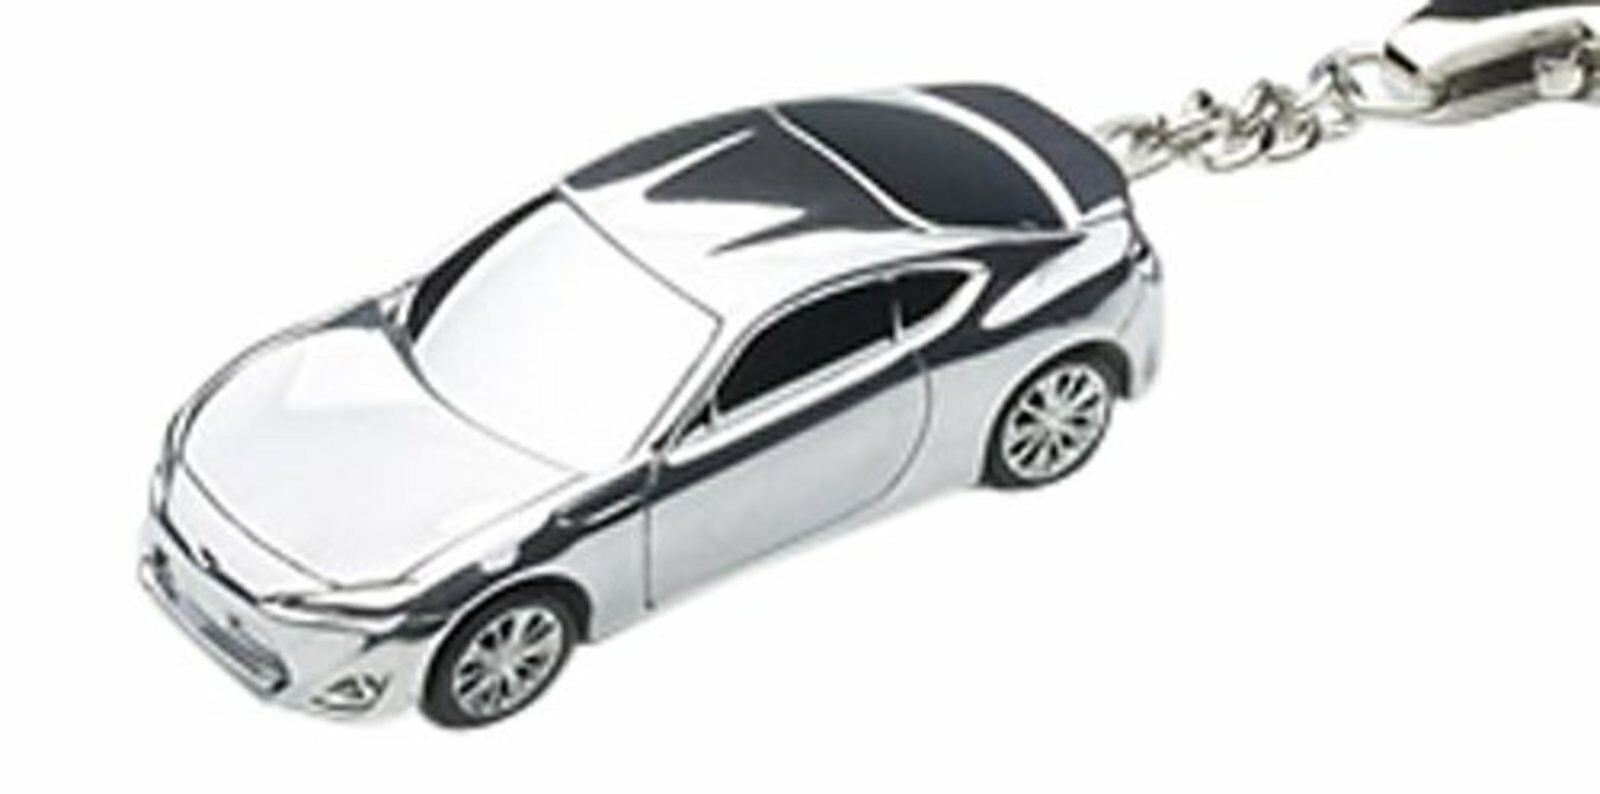 AUTOart 1 1 1 87 scale Toyota 86 key chain (aluminum) F S w Tracking  New from Japan 8c529f